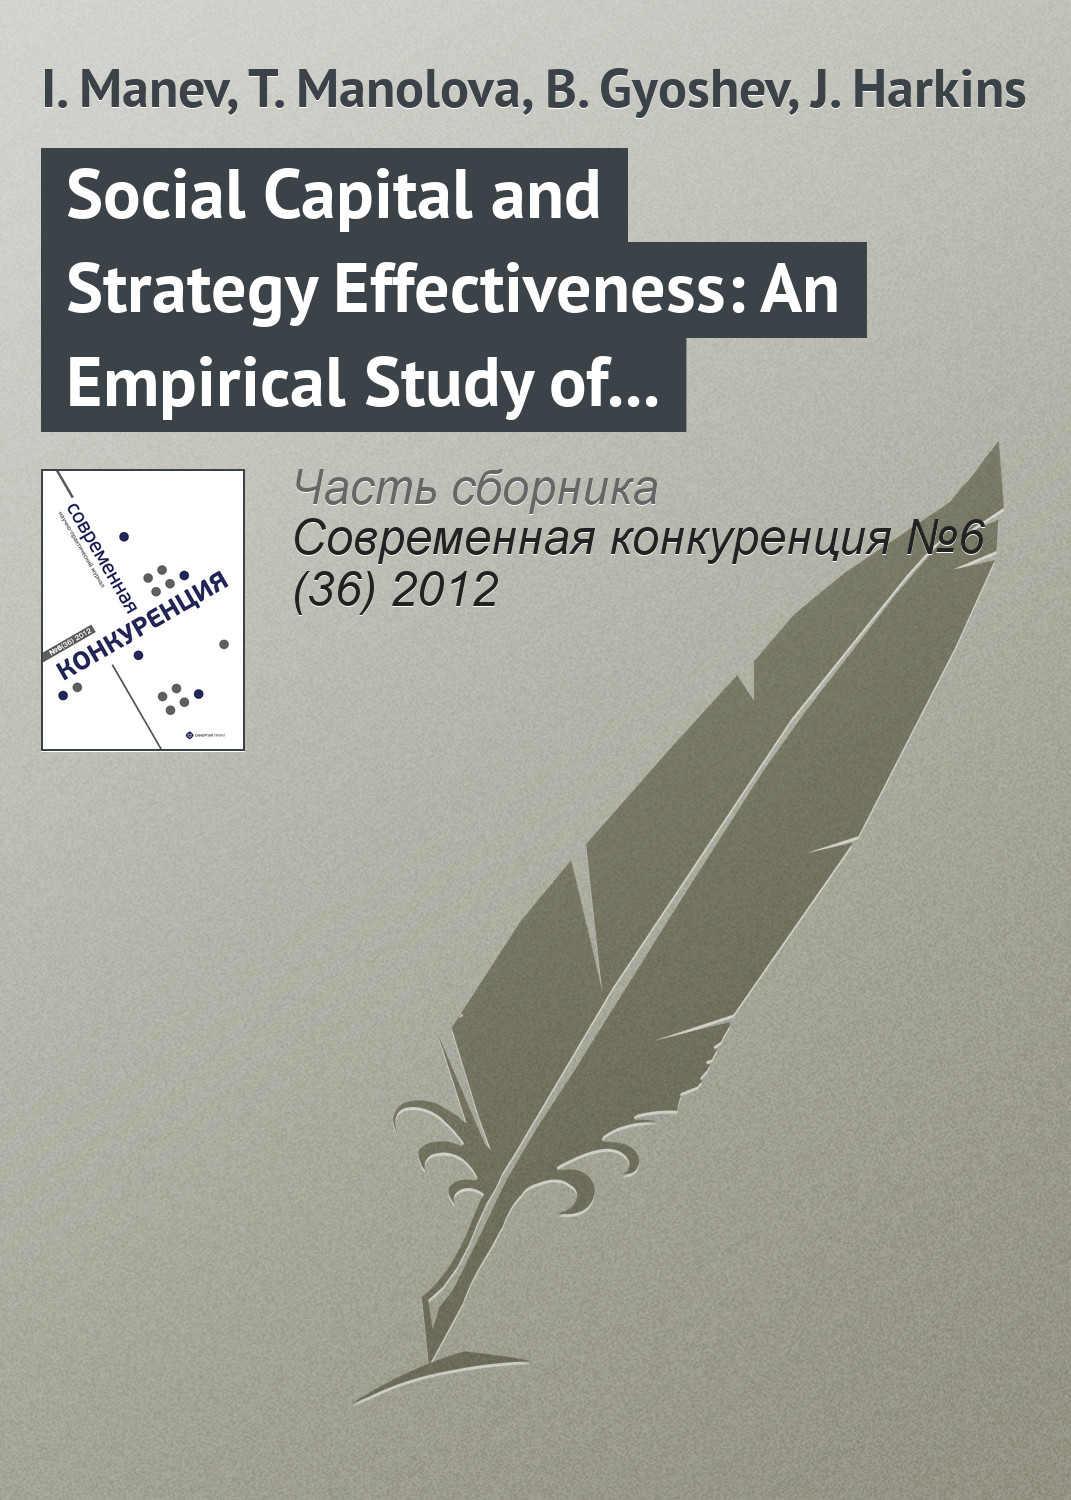 I. Manev Social Capital and Strategy Effectiveness: An Empirical Study of Entrepreneurial Ventures in a Transition Economy social capital a group performance evaluation page 9